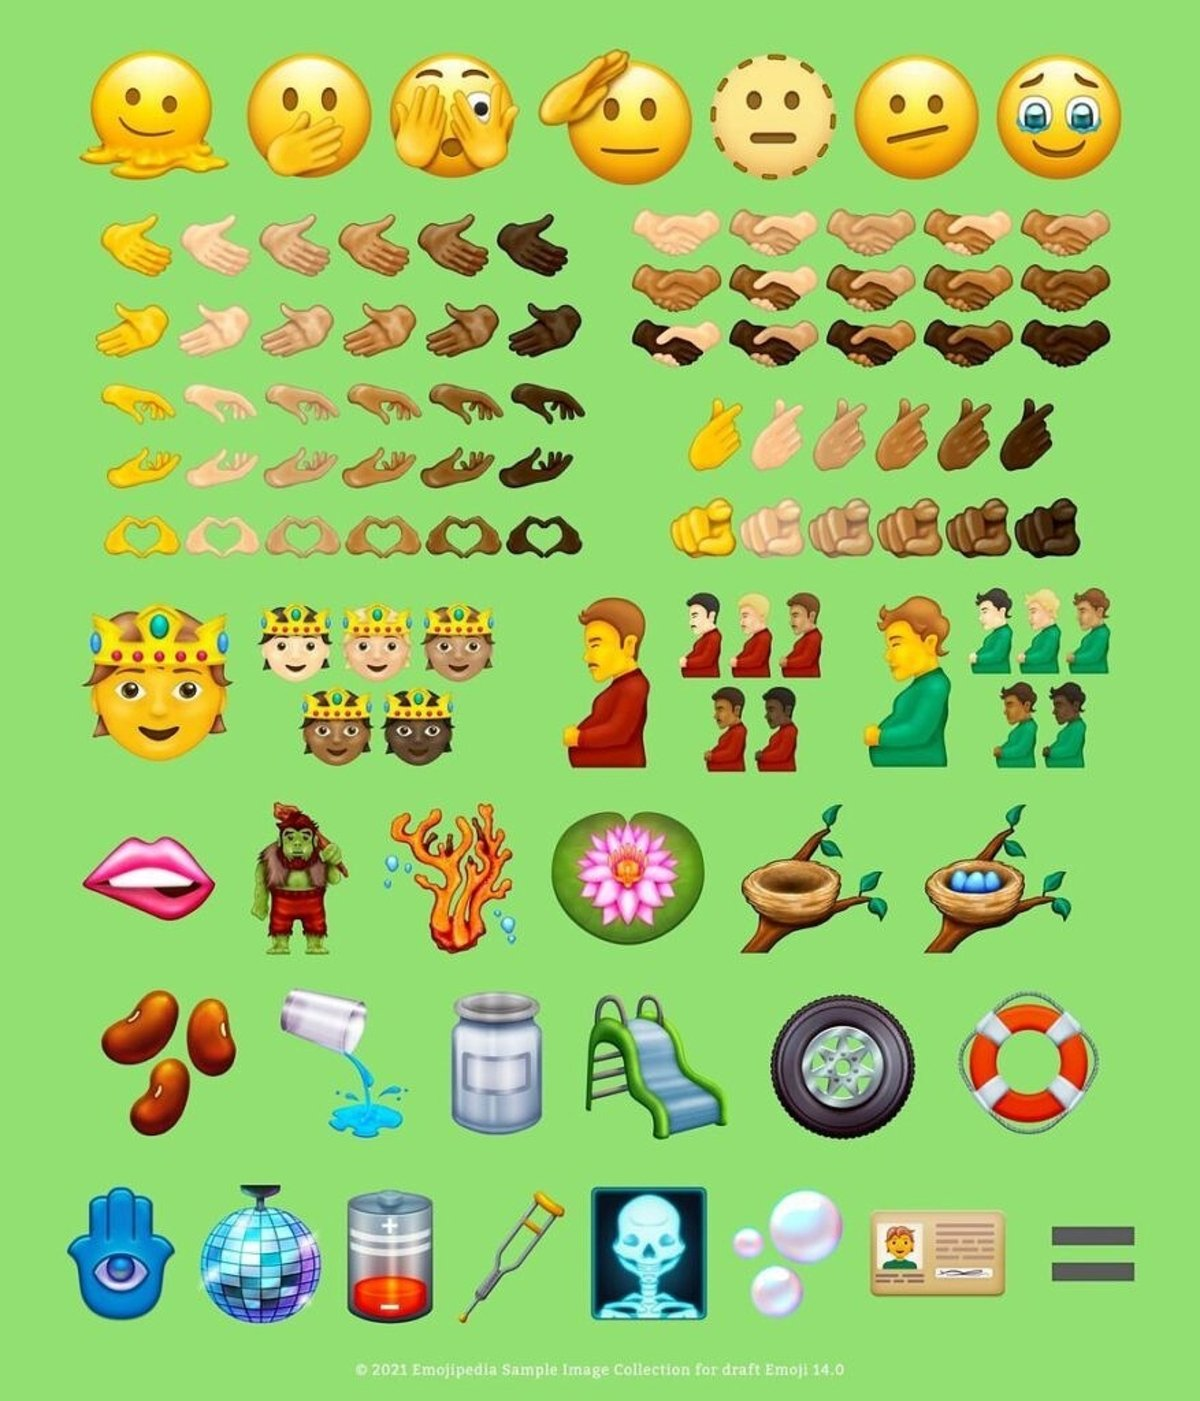 All the new emojis in Unicode 14